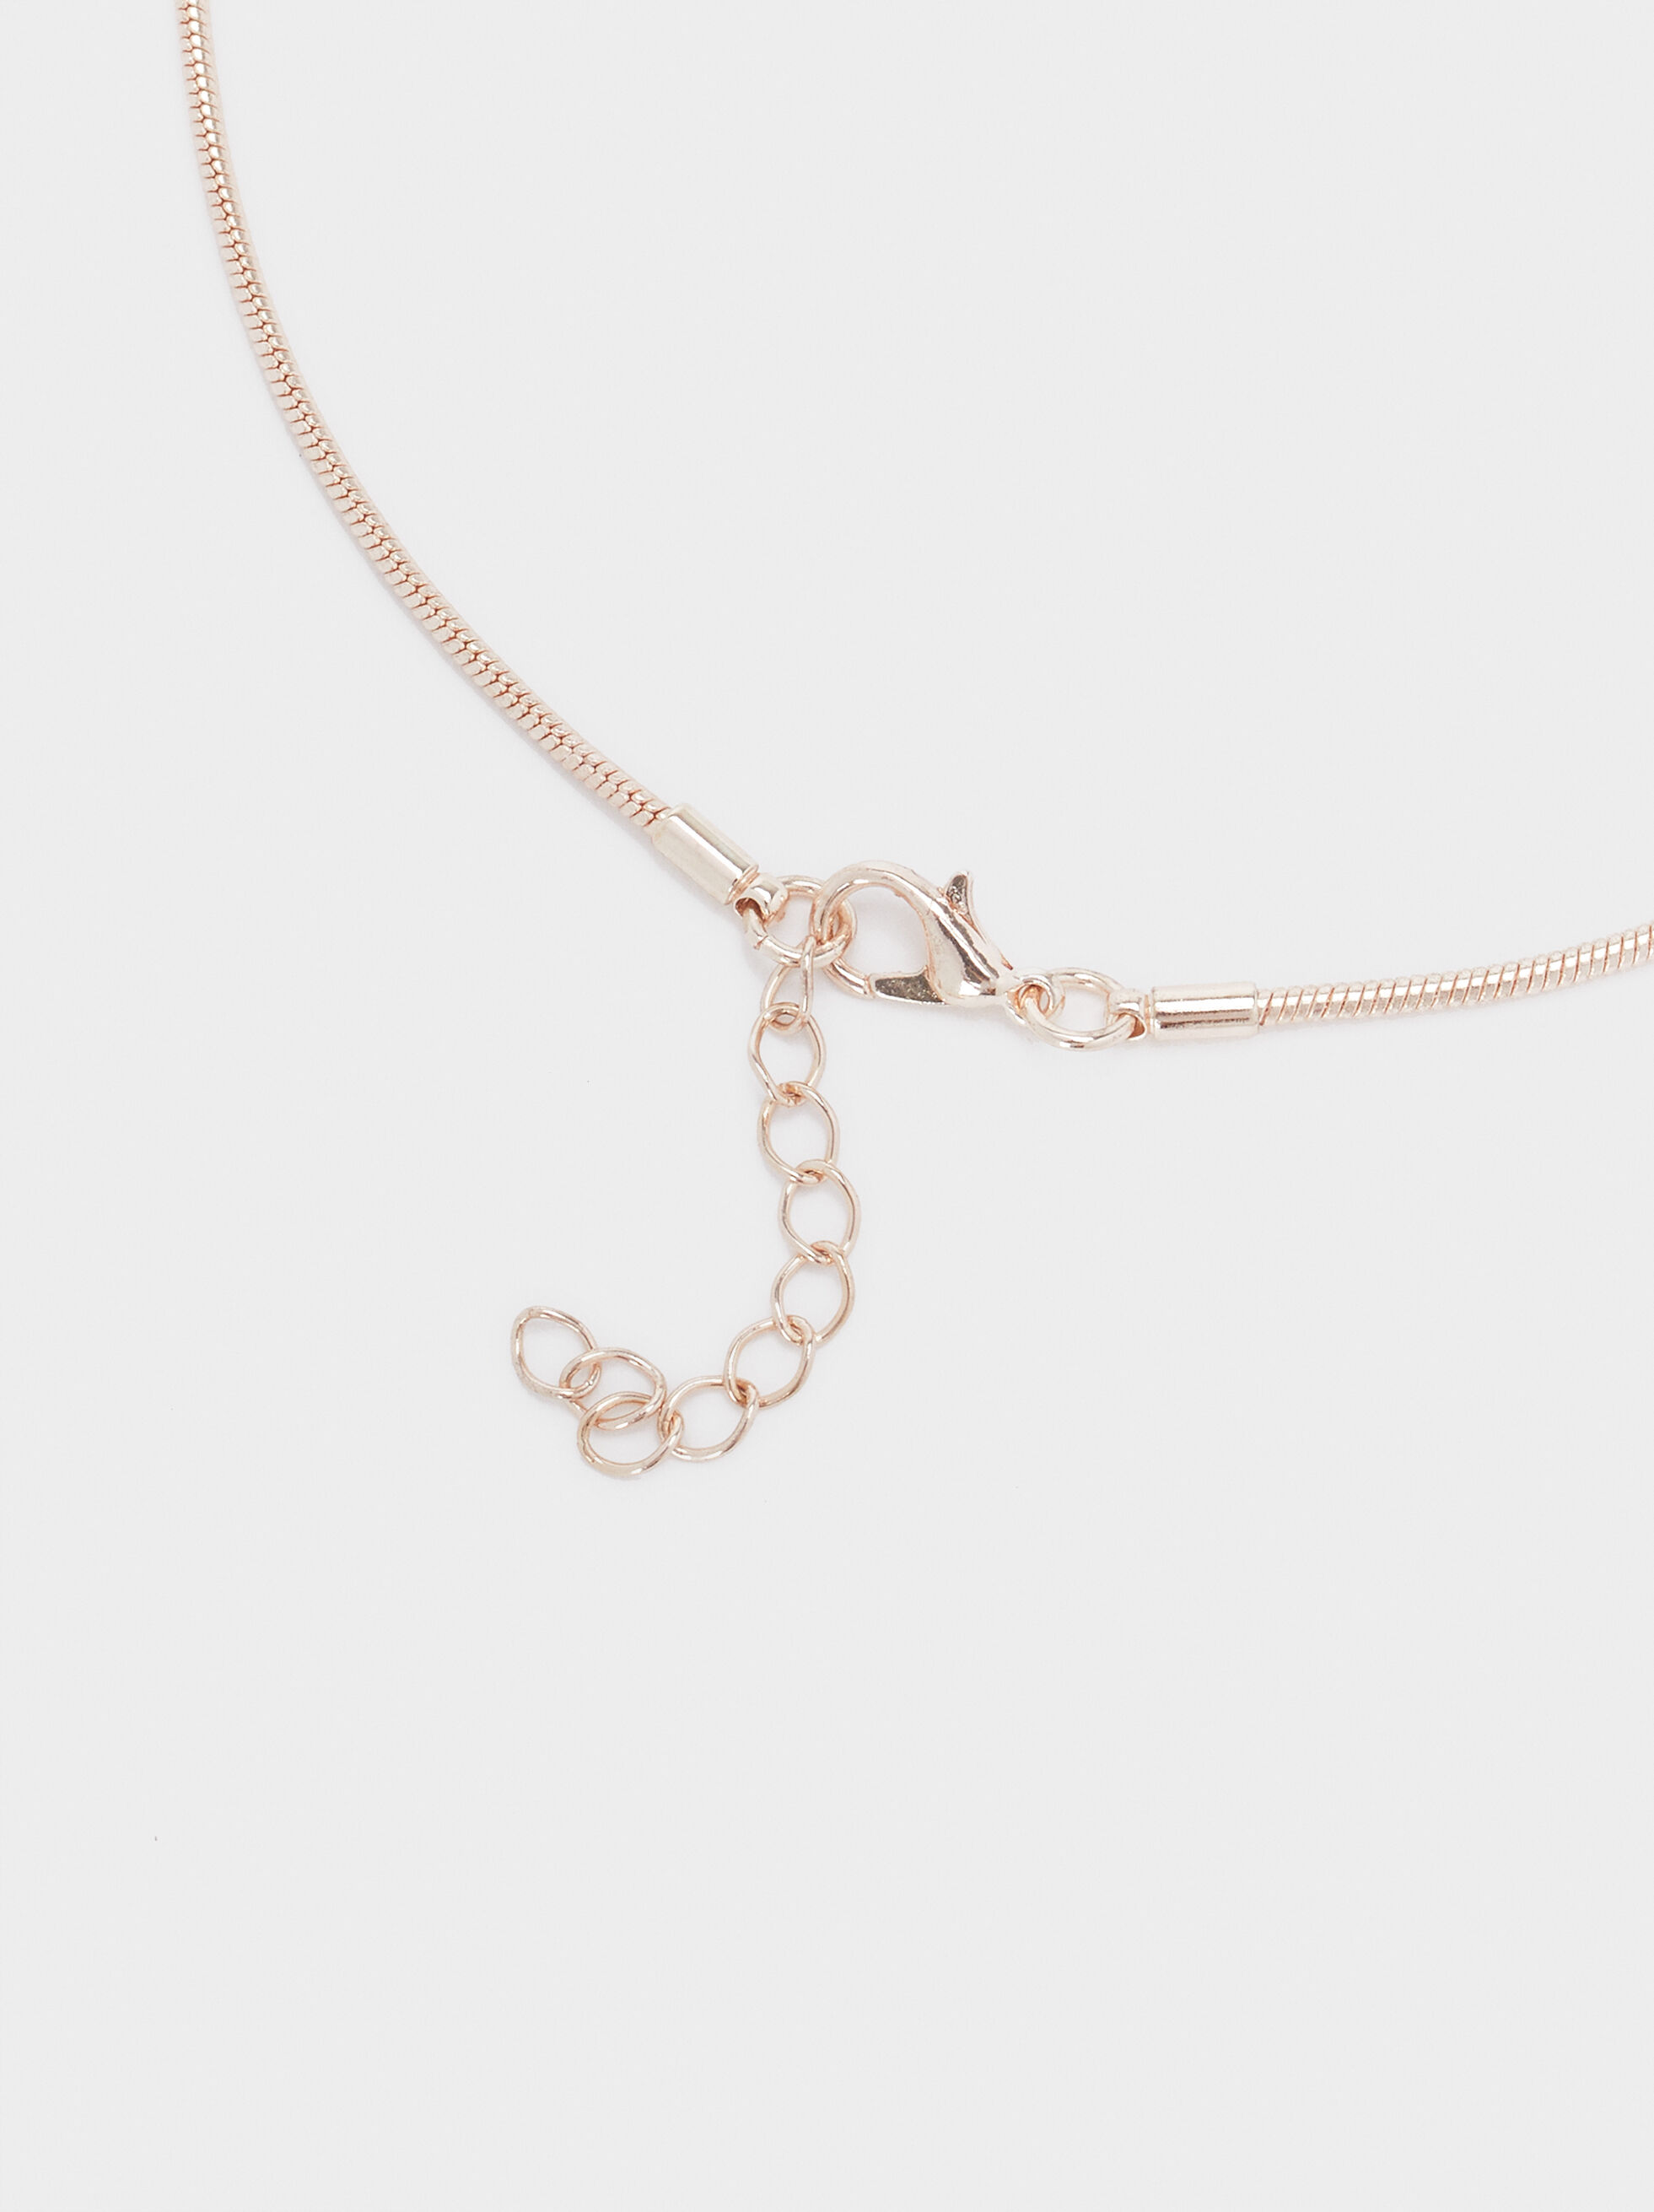 Rose Gold Necklace With Pearl Detail, Orange, hi-res